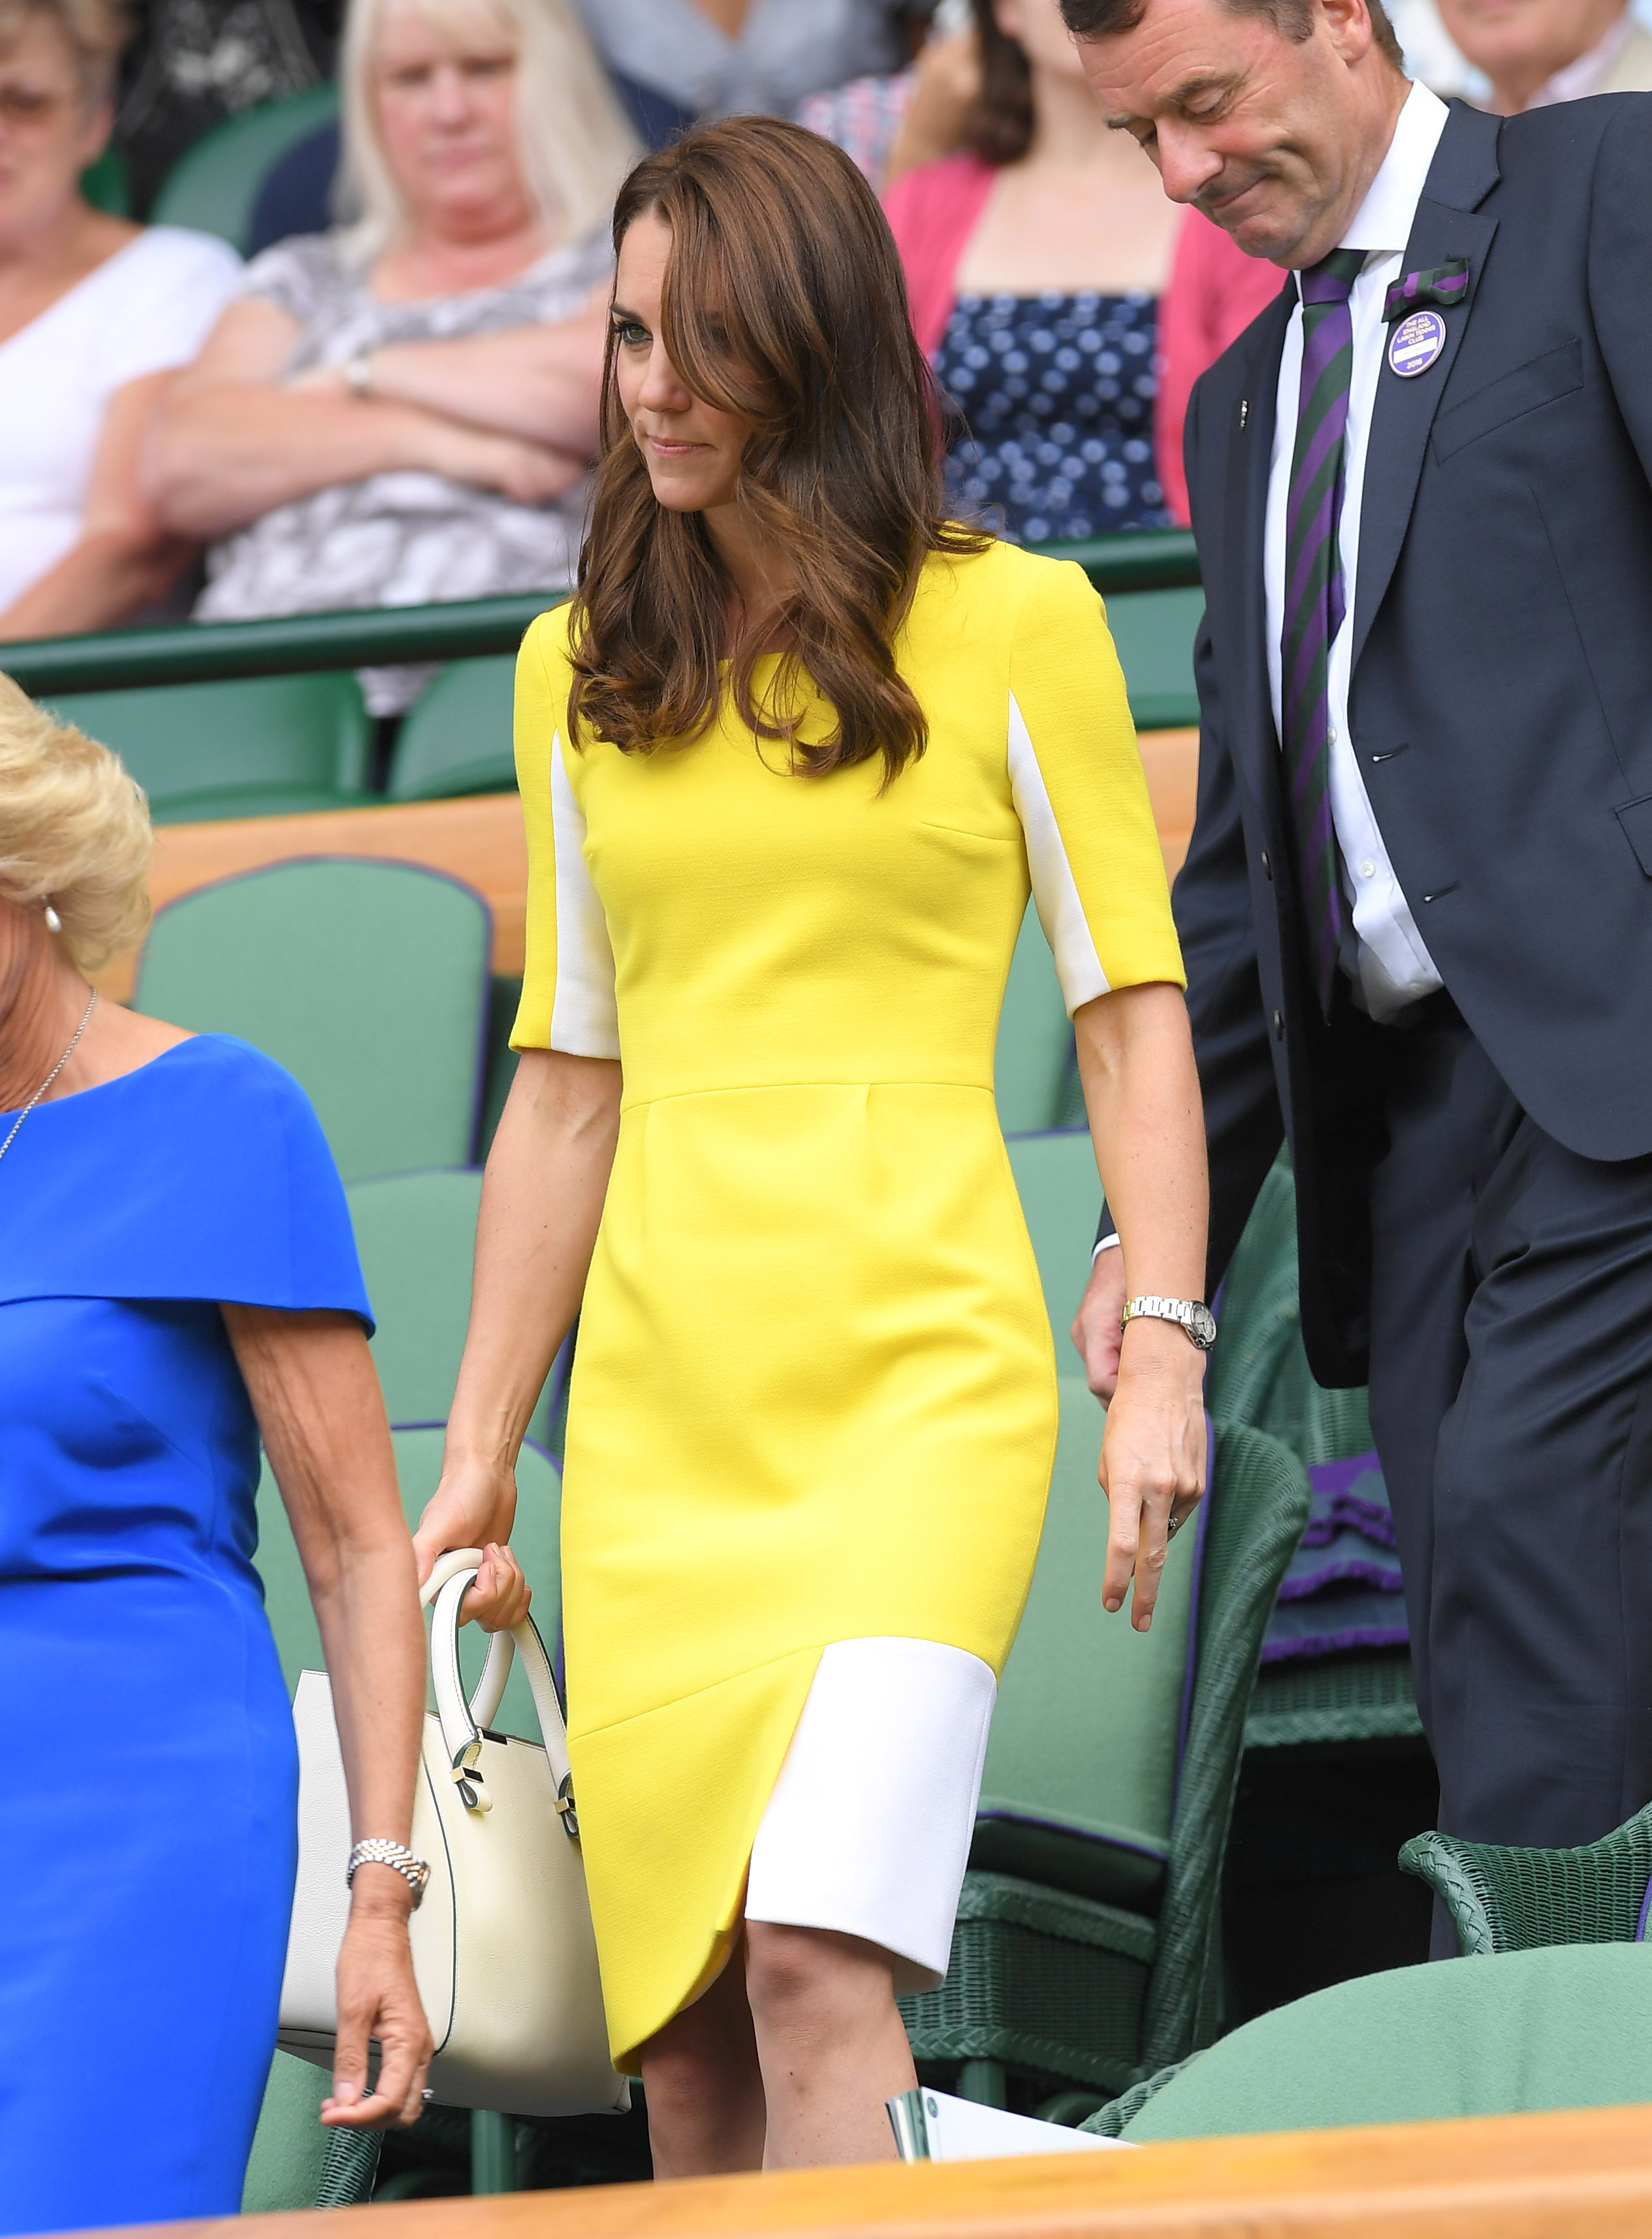 Catherine, Duchess of Cambridge attends day ten of the Wimbledon Tennis Championships at Wimbledon in London on June 27, 2016.